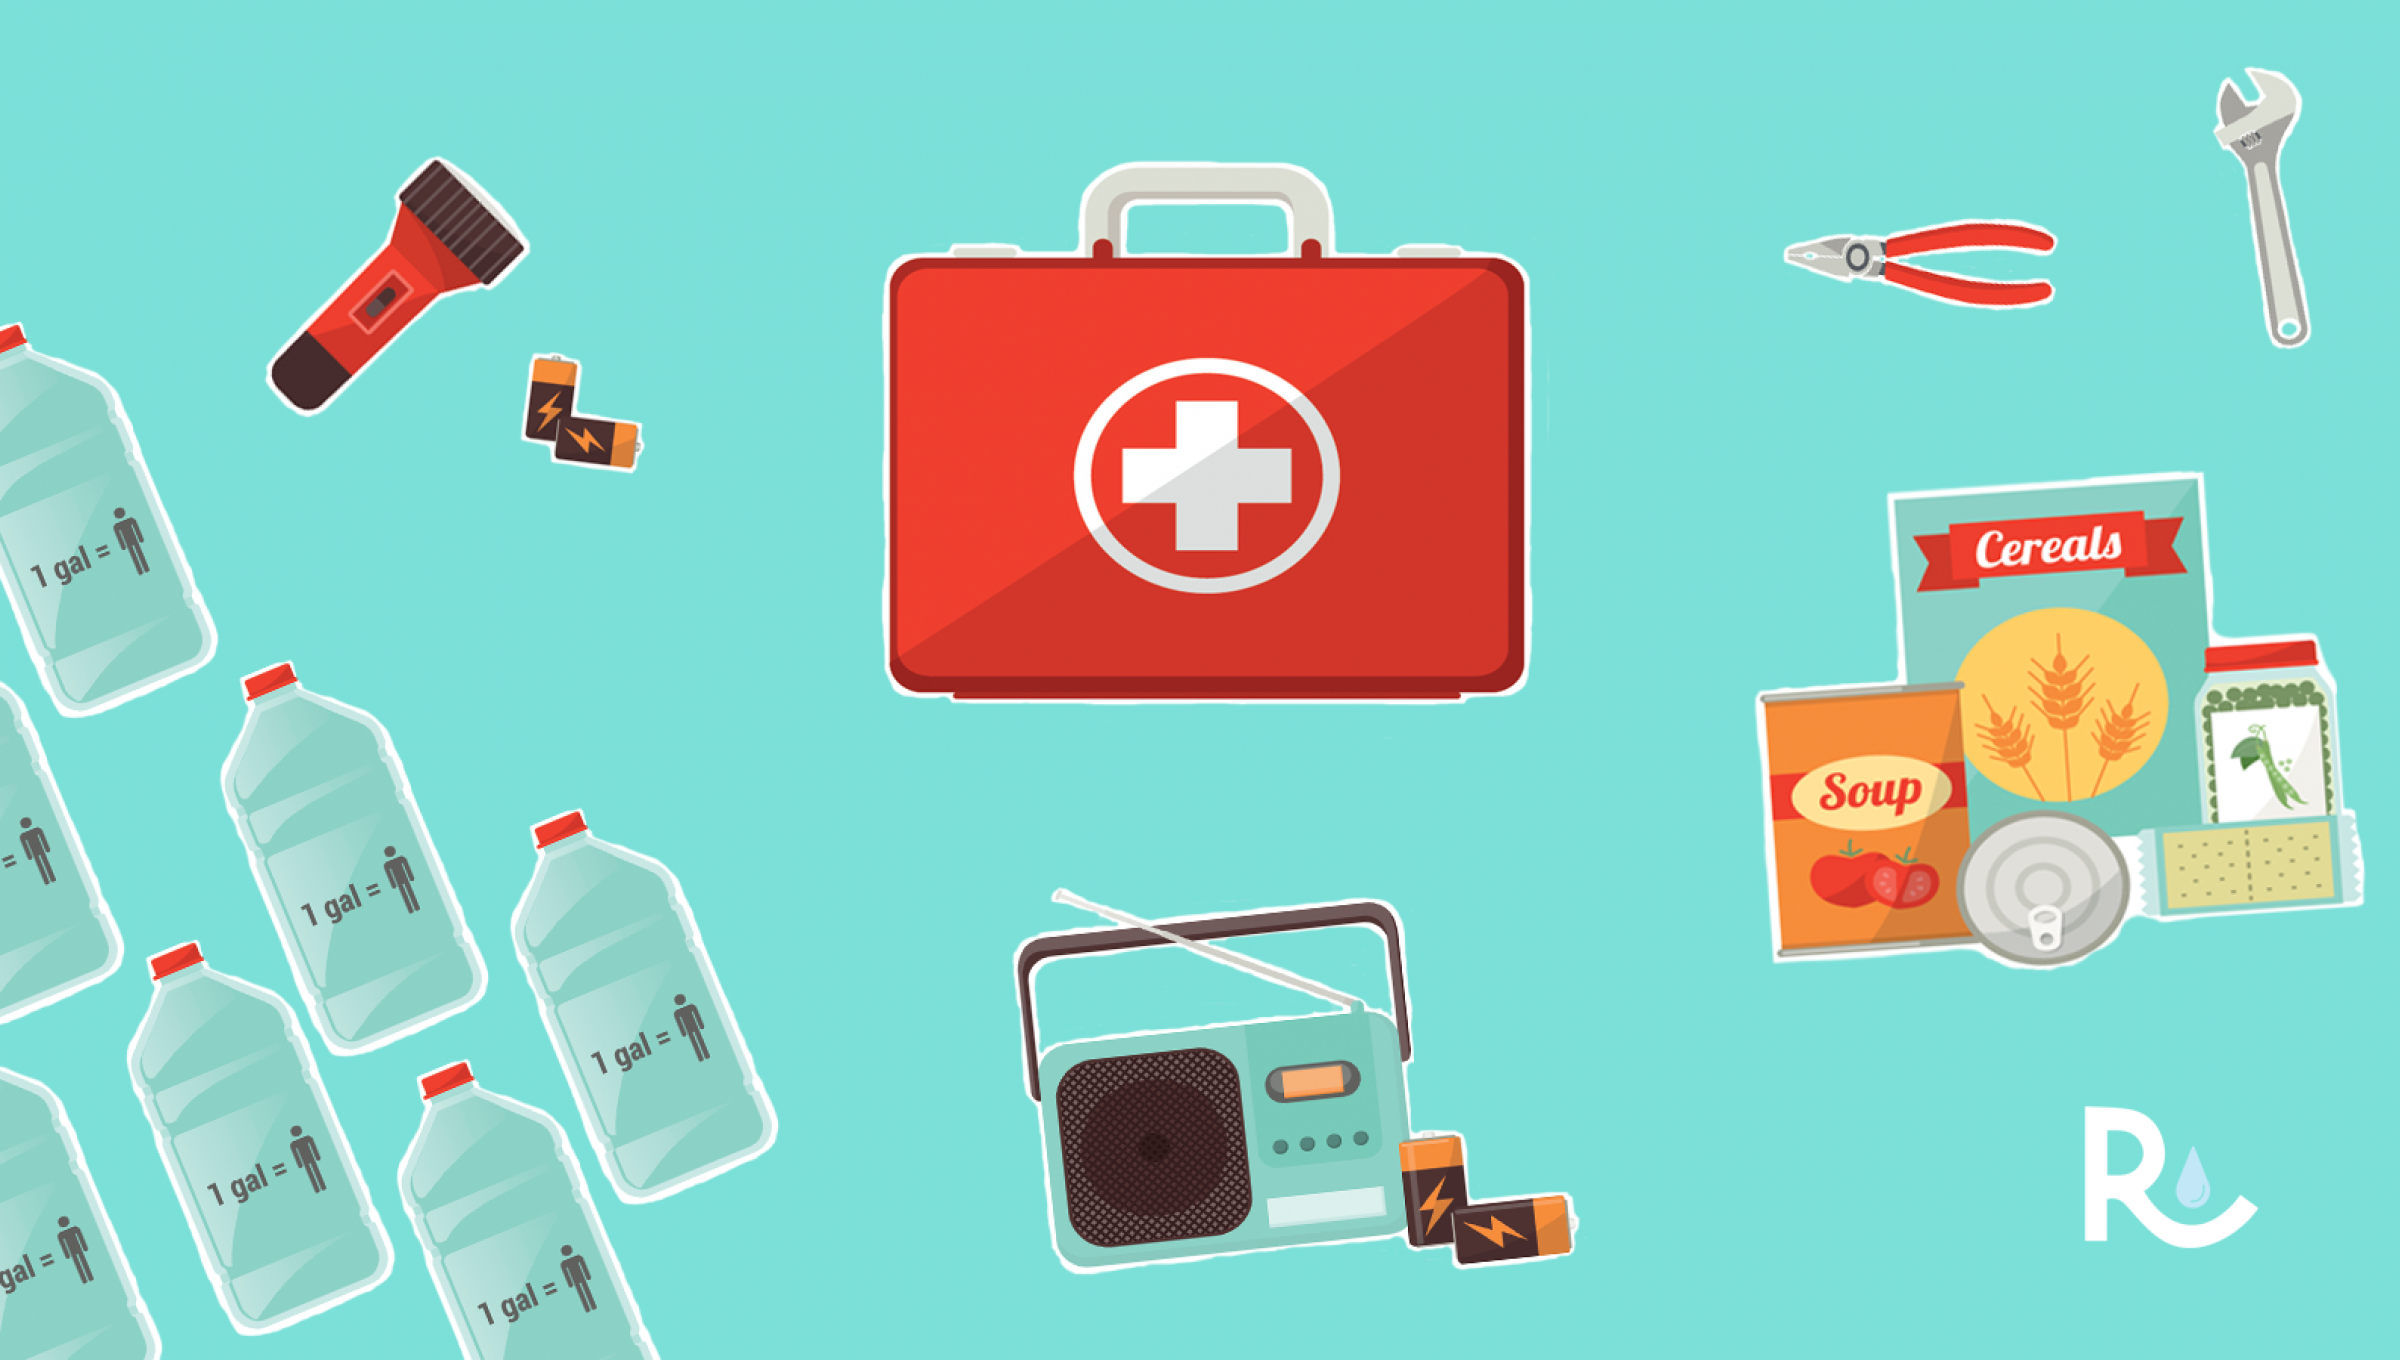 A graphic depicting bottled water, a flashlight and batteries, a radio, food items, tools and a first aid kit on a teal background with the Right as Rain logo in the bottom right hand corner.